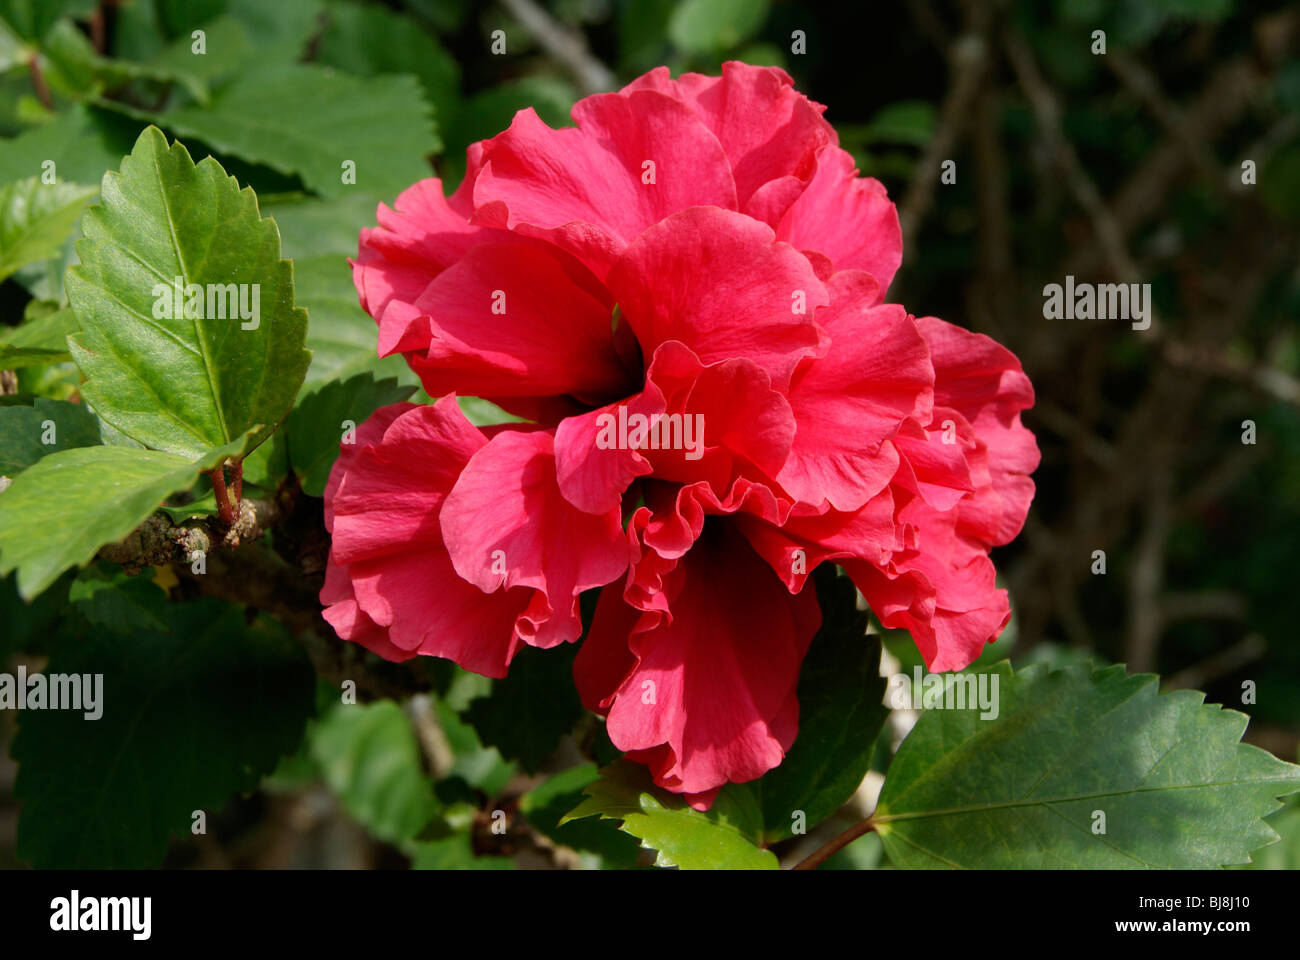 Kerala hibiscus flower stock photos kerala hibiscus flower stock very cute and variety red hibiscus flower found in keralaindiahibiscus flower is izmirmasajfo